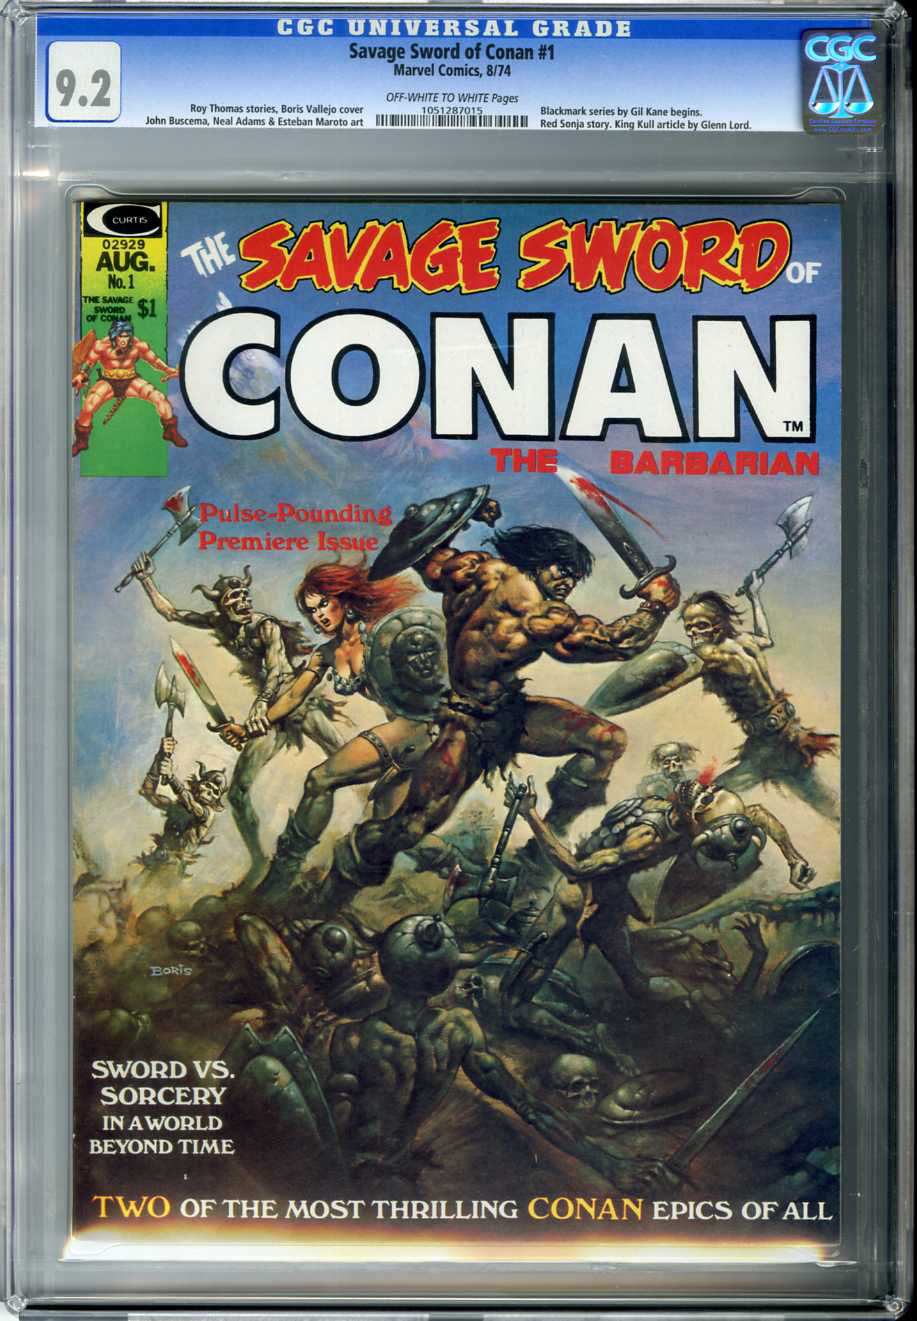 SAVAGE SWORD OF CONAN #1 (1974) CGC NM- 9.2 OWW Pages BORIS VALLEJO COVER